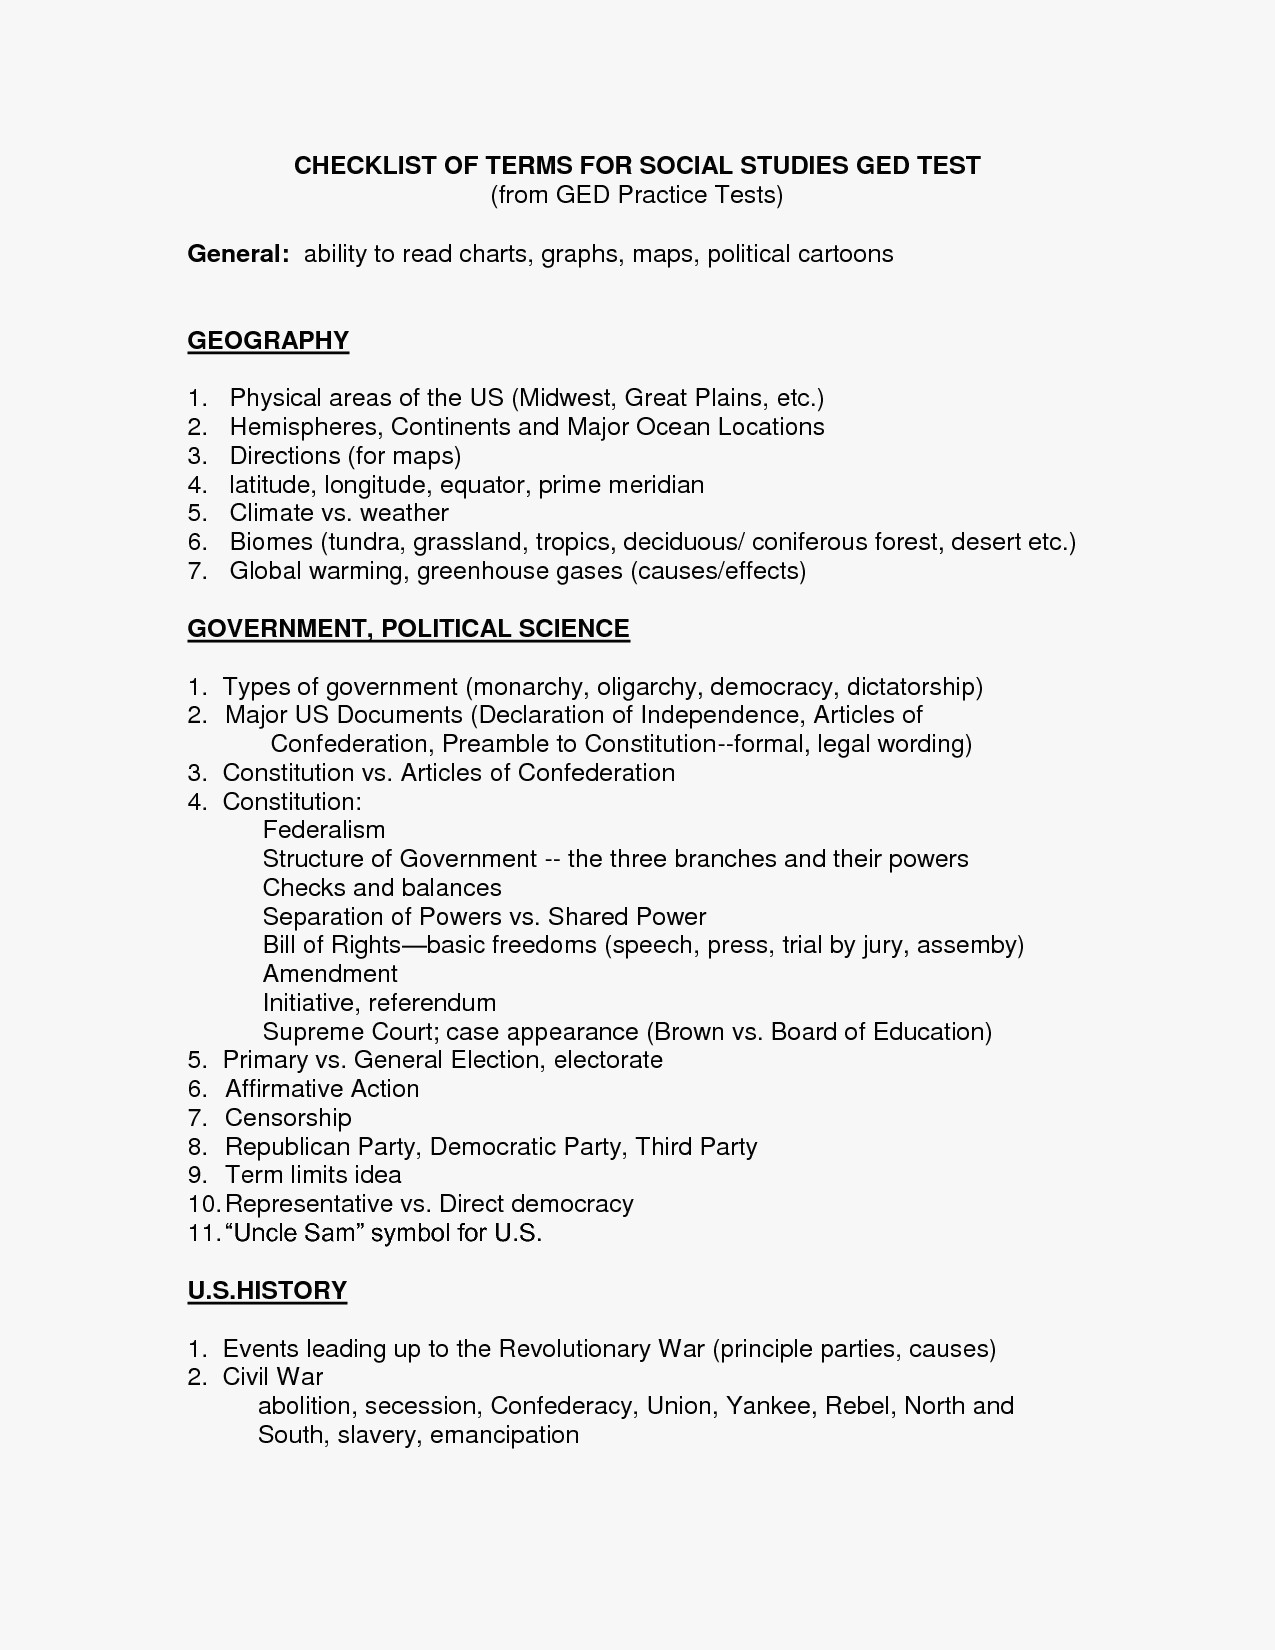 Free Printable Ged Math Worksheets Ged Tasc Class - Classy World | Ged Social Studies Printable Worksheets